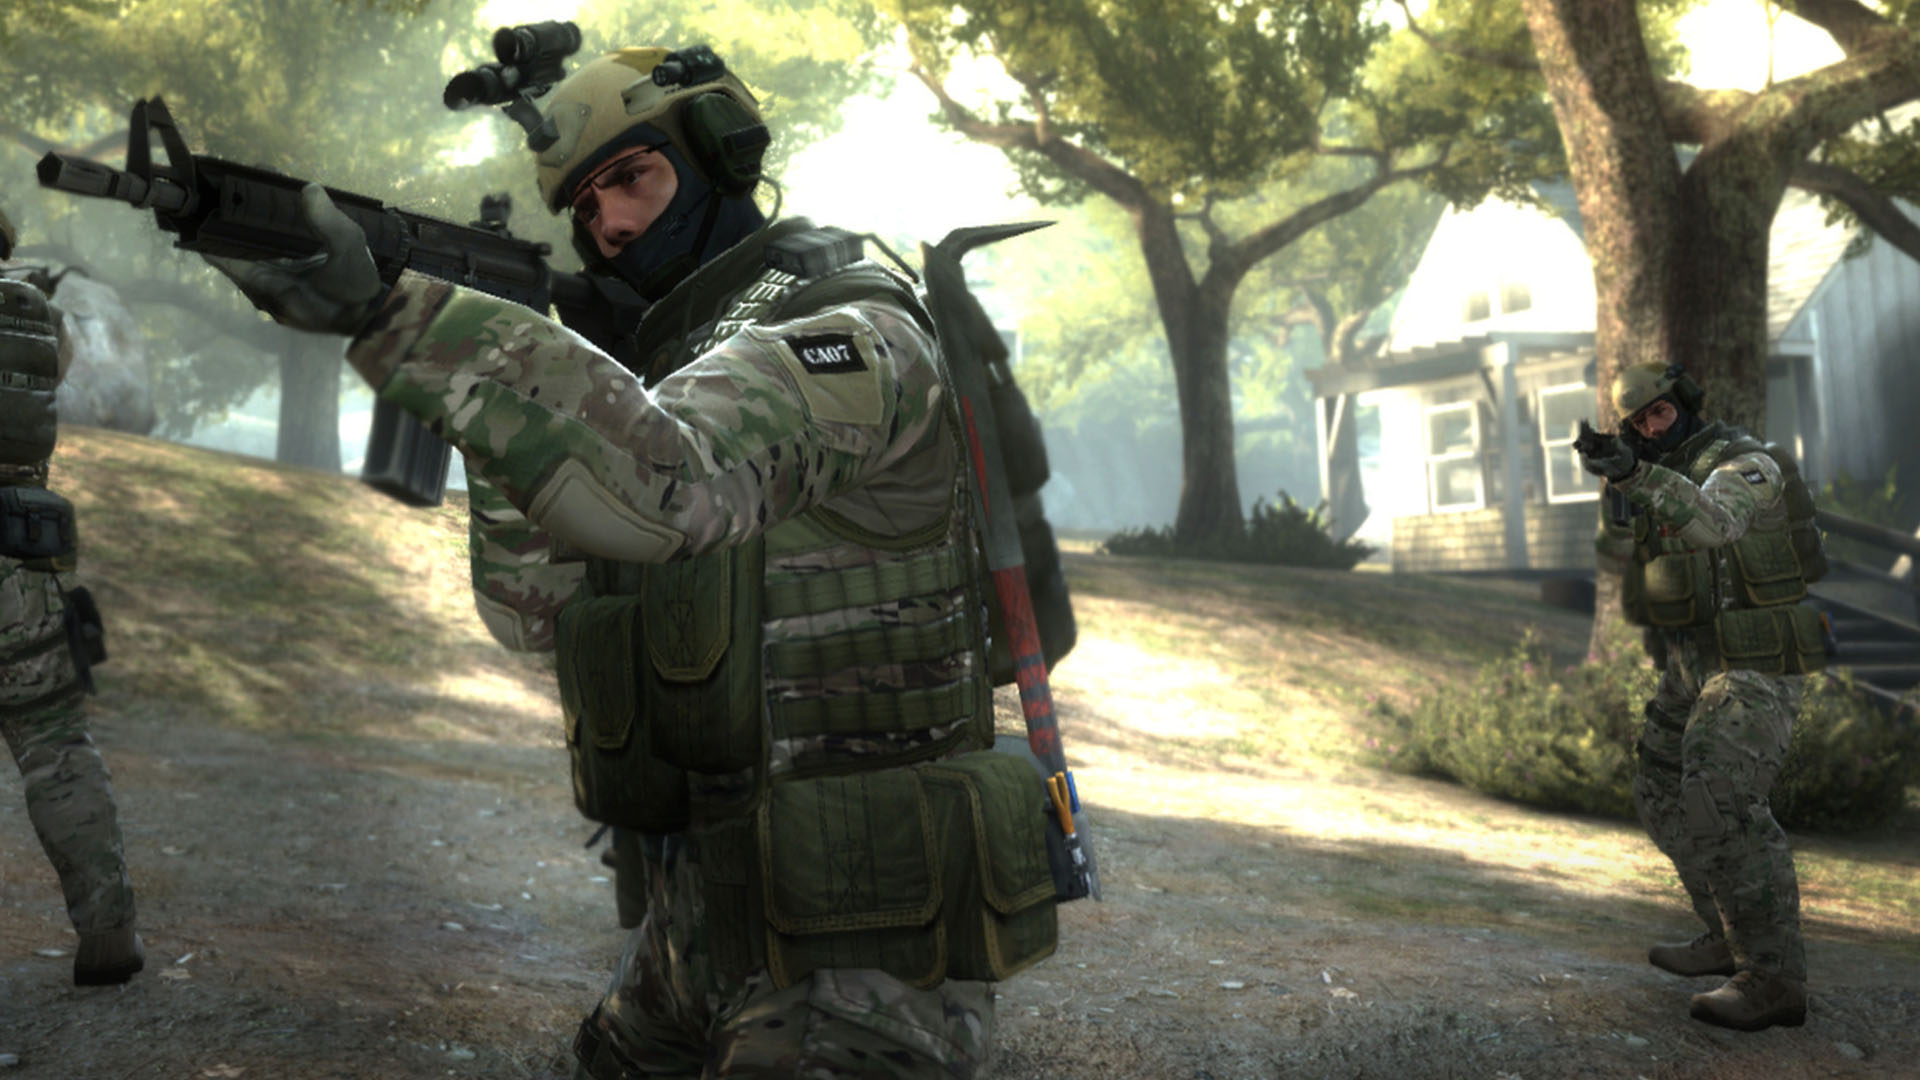 Valve added skins to Counter-Strike: Global Offensive in 2013